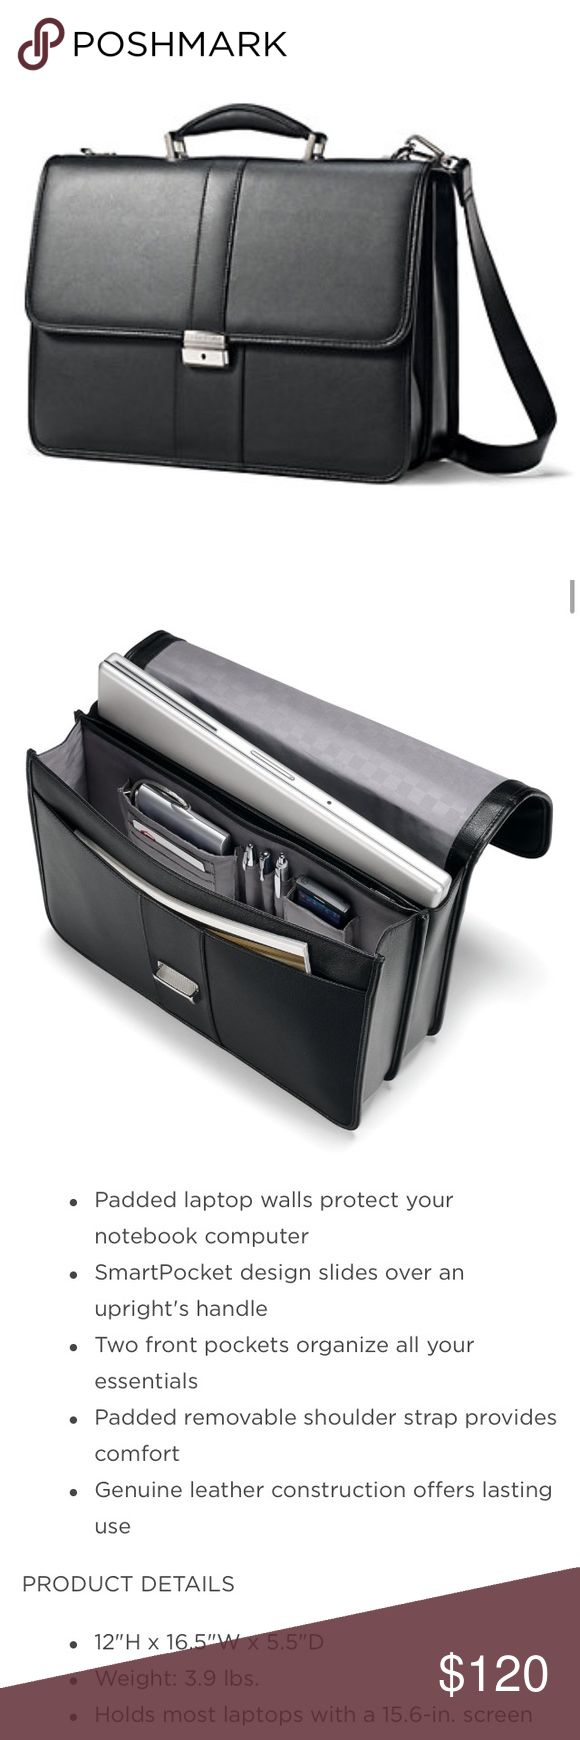 Samsonite Classic Leather Flap Laptop Briefcase Samsonite Classic Genuine Leather Flap Laptop Briefcase. Get the perfect office-ready look with this classic and elegant, lightweight business laptop briefcase 💼 in black. Tags still attached, comes with shoulder strap and key!!! Samsonite Bags